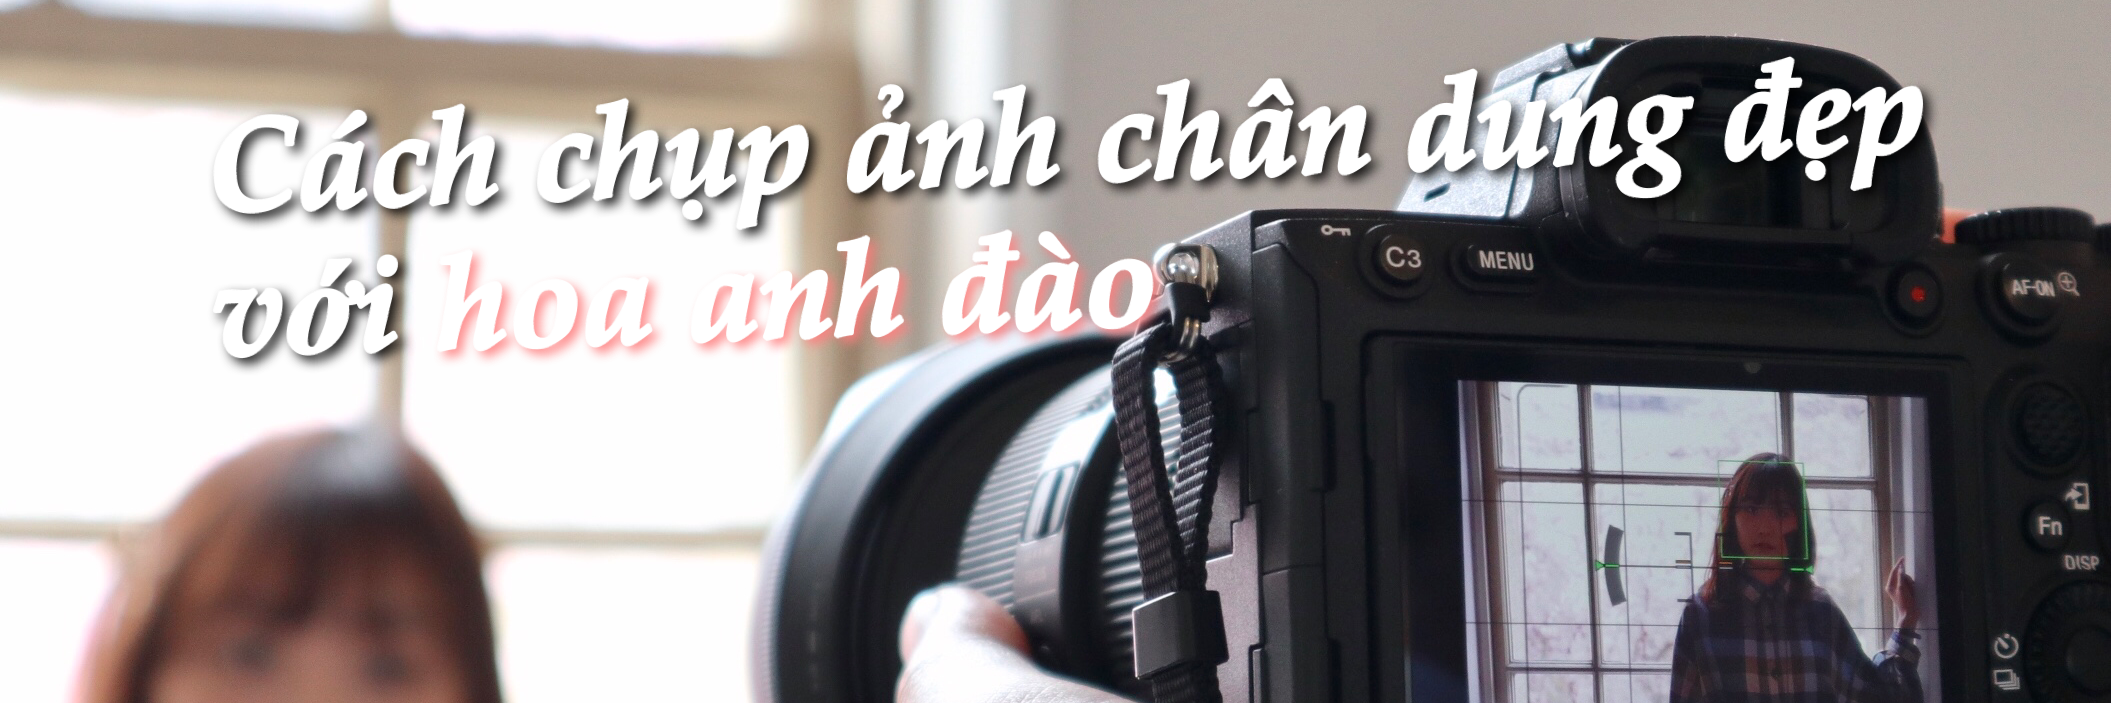 https://gody.vn/blog/165732757665598/post/cach-chup-anh-chan-dung-dep-voi-hoa-anh-dao-6518